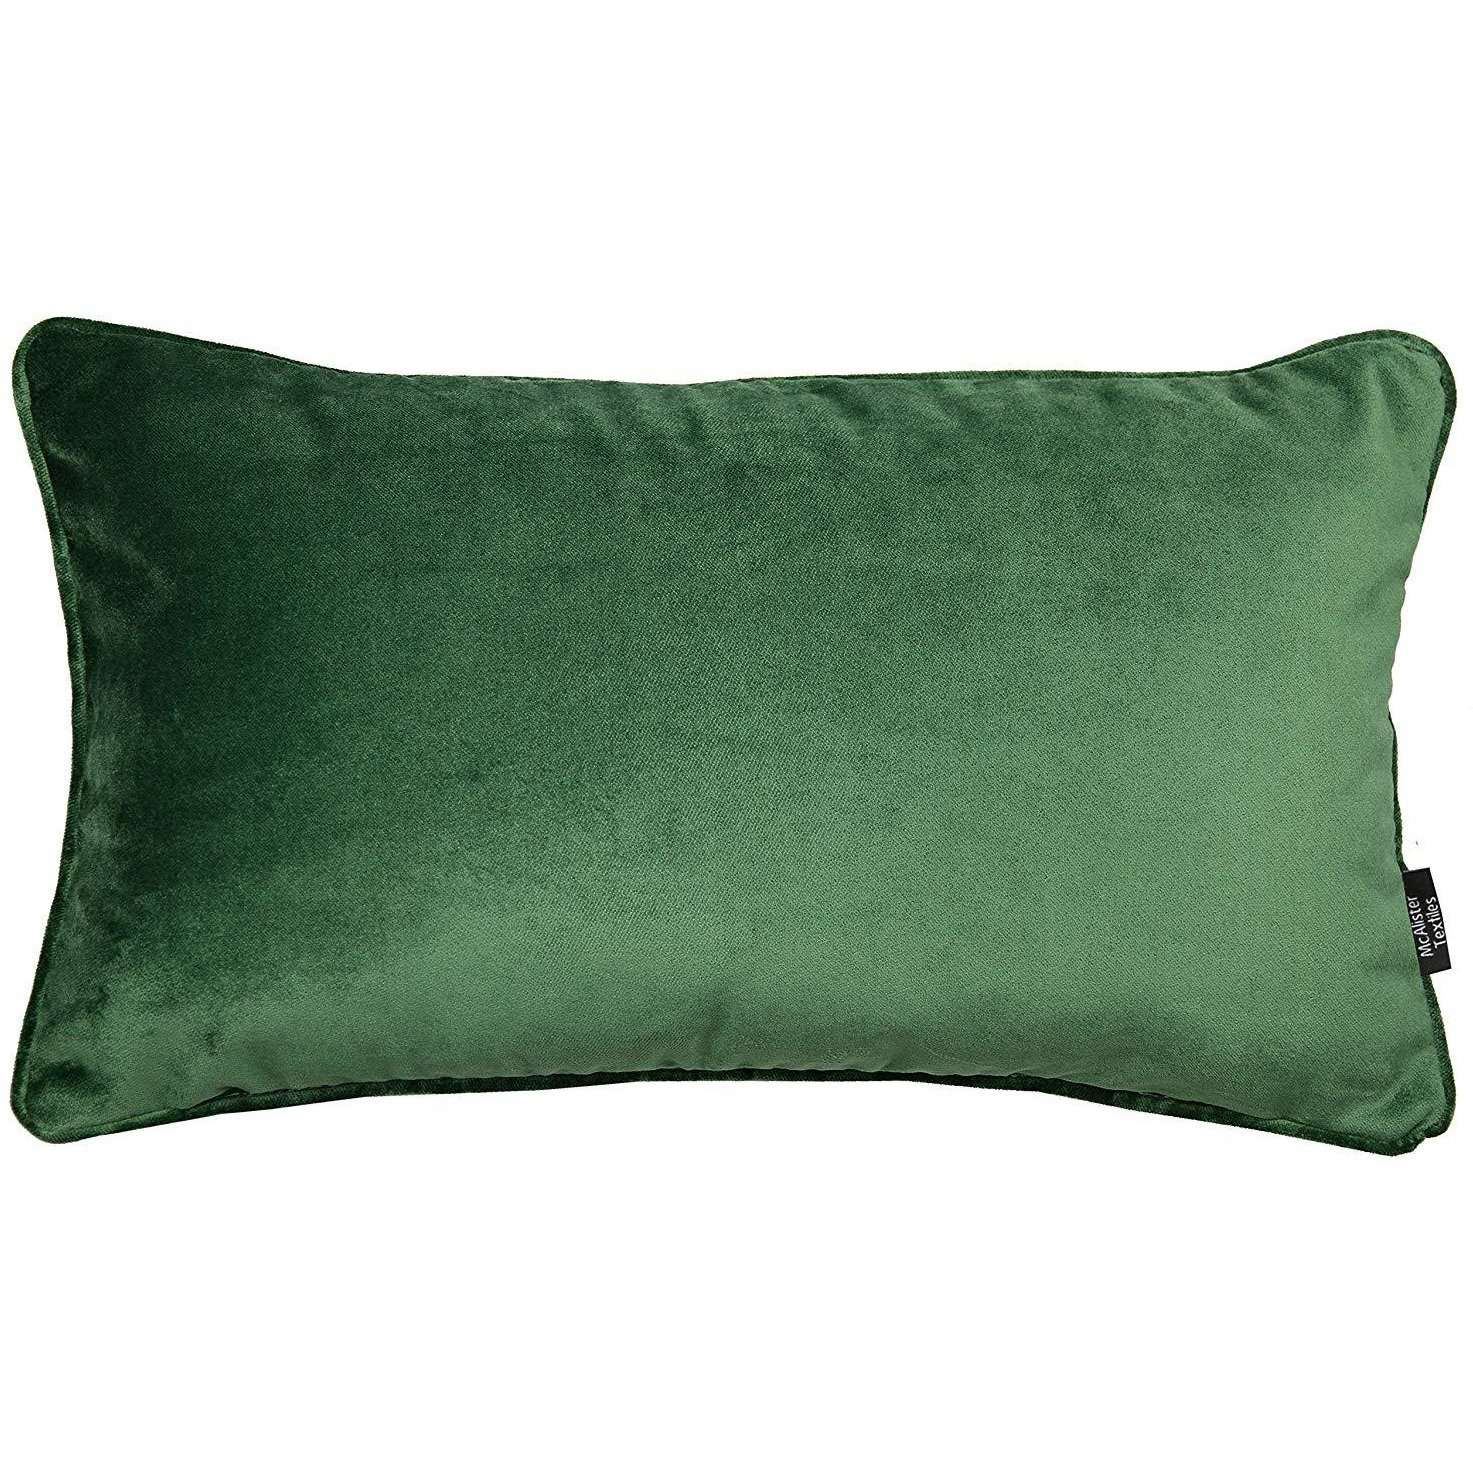 McAlister Textiles Matt Moss Green Velvet Cushion Cushions and Covers Cover Only 50cm x 30cm